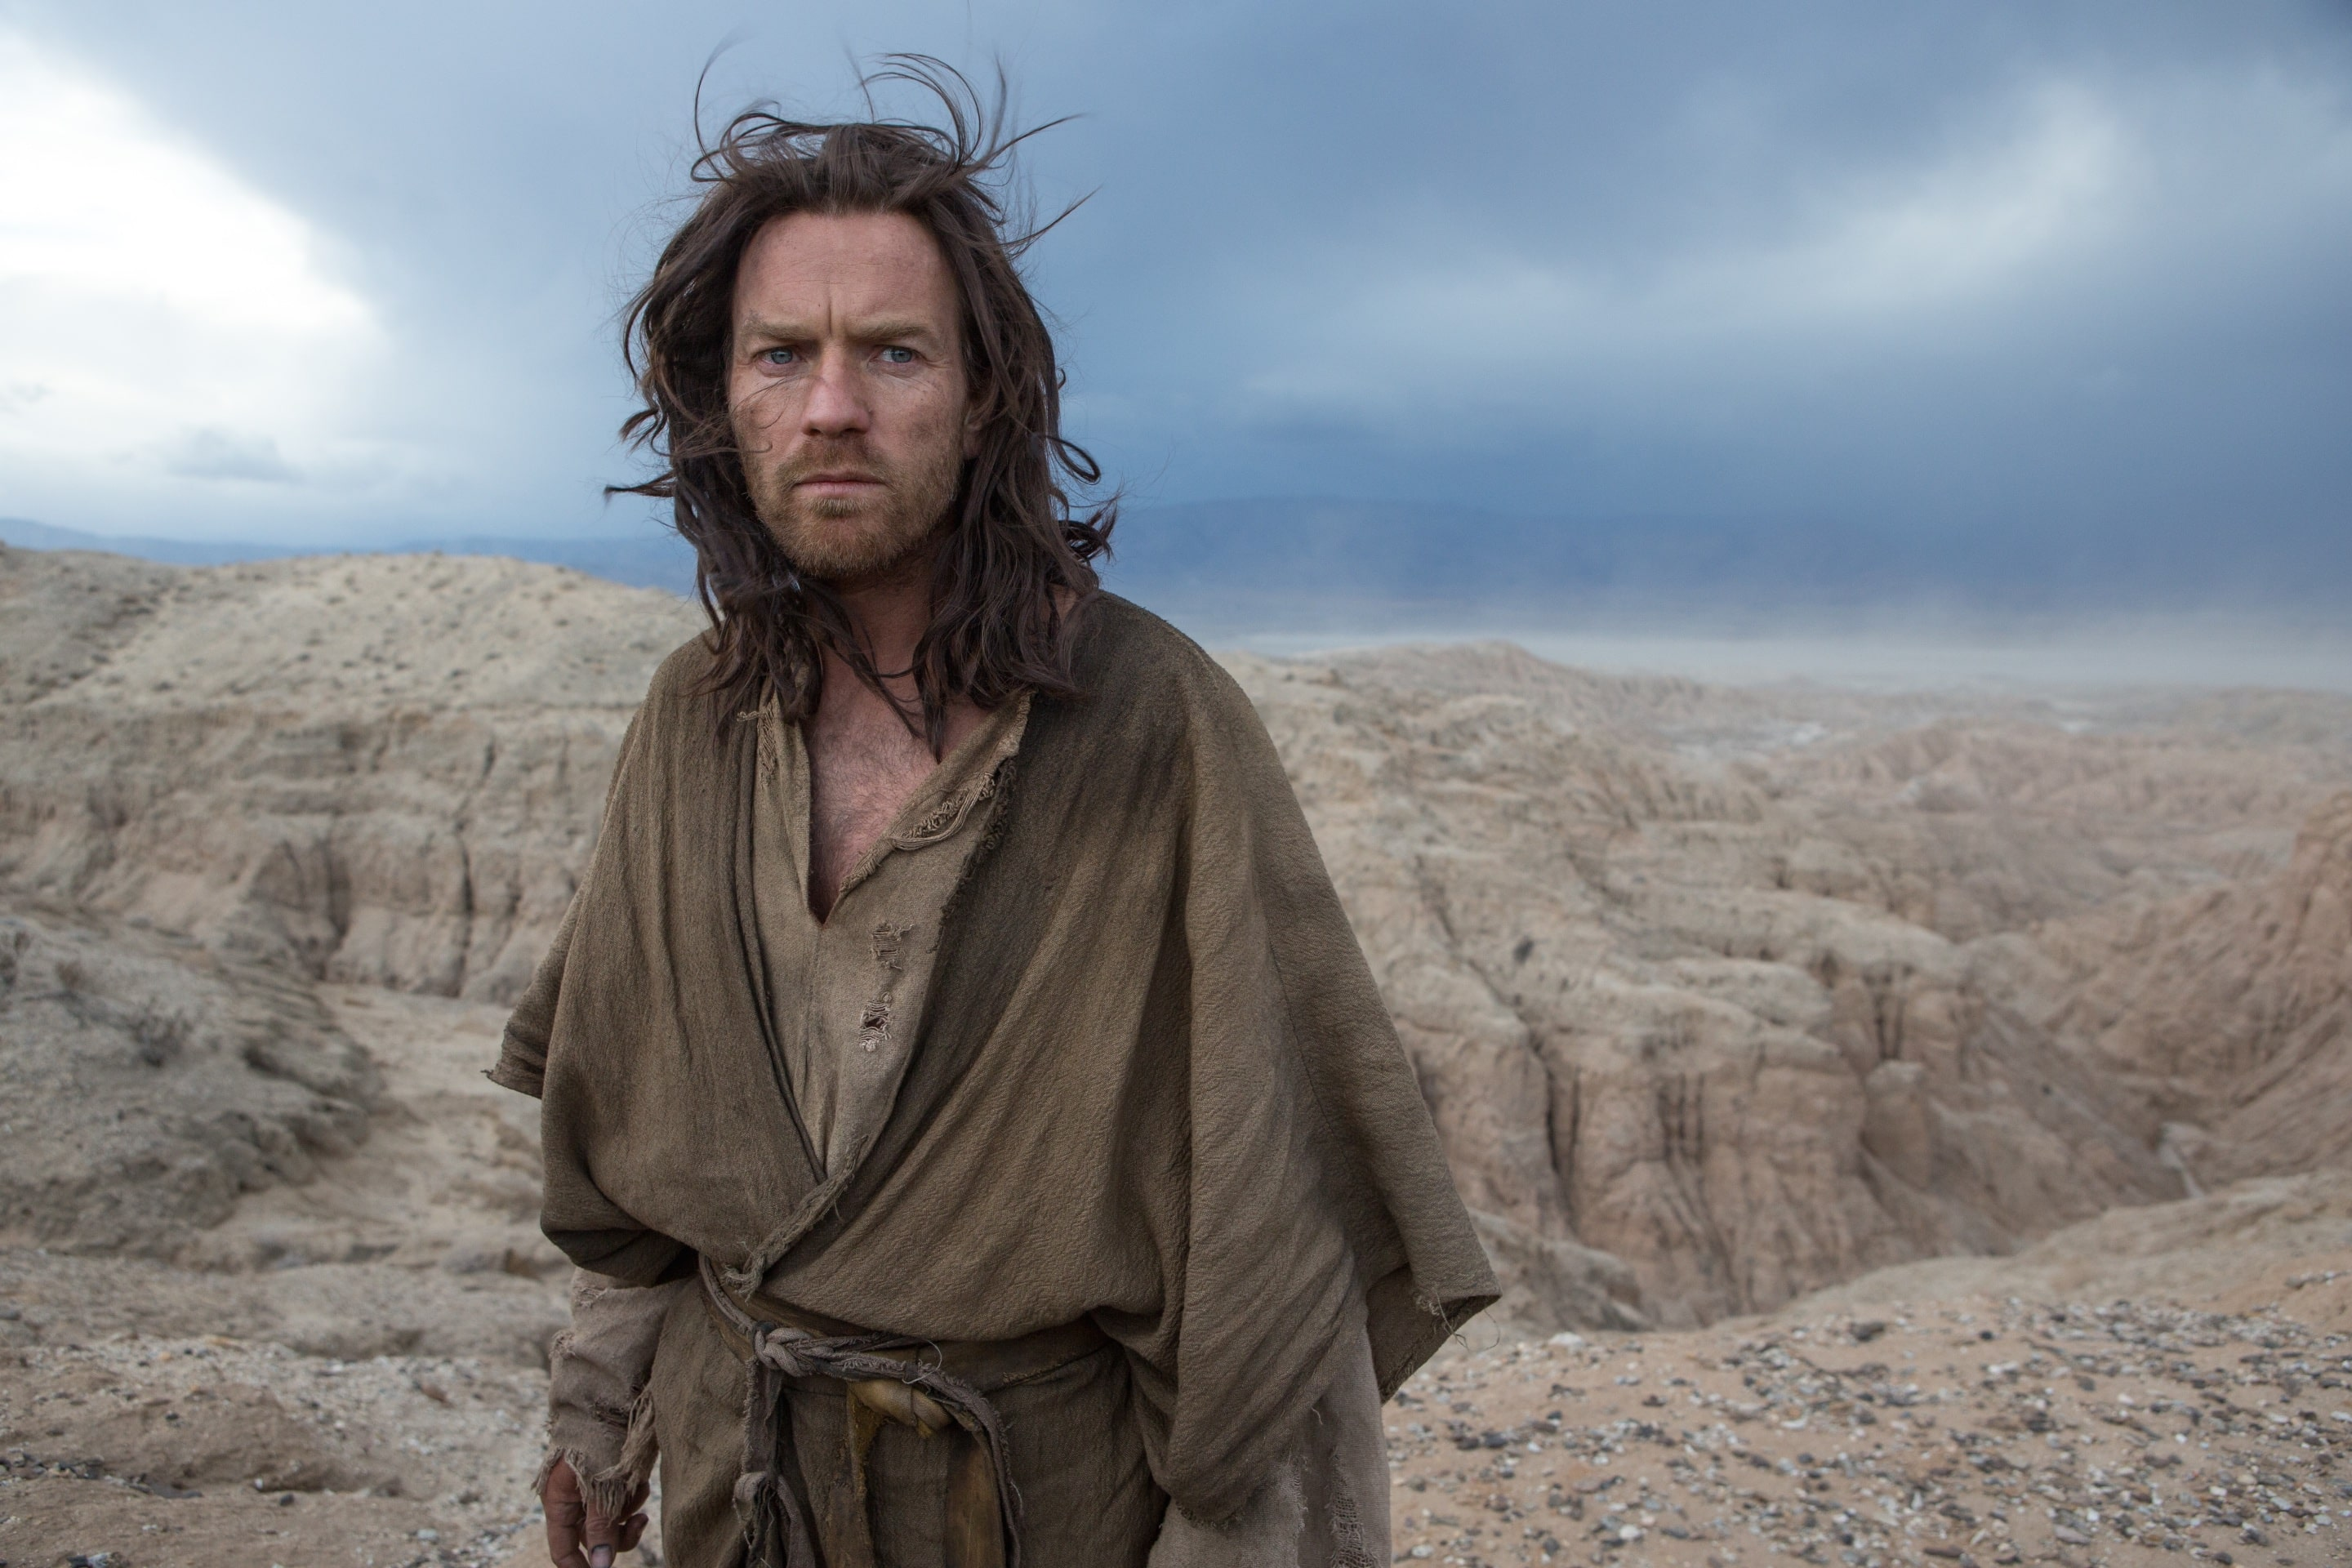 Trailer de 'Last Days in the Desert' con Ewan McGregor y Tye Sheridan